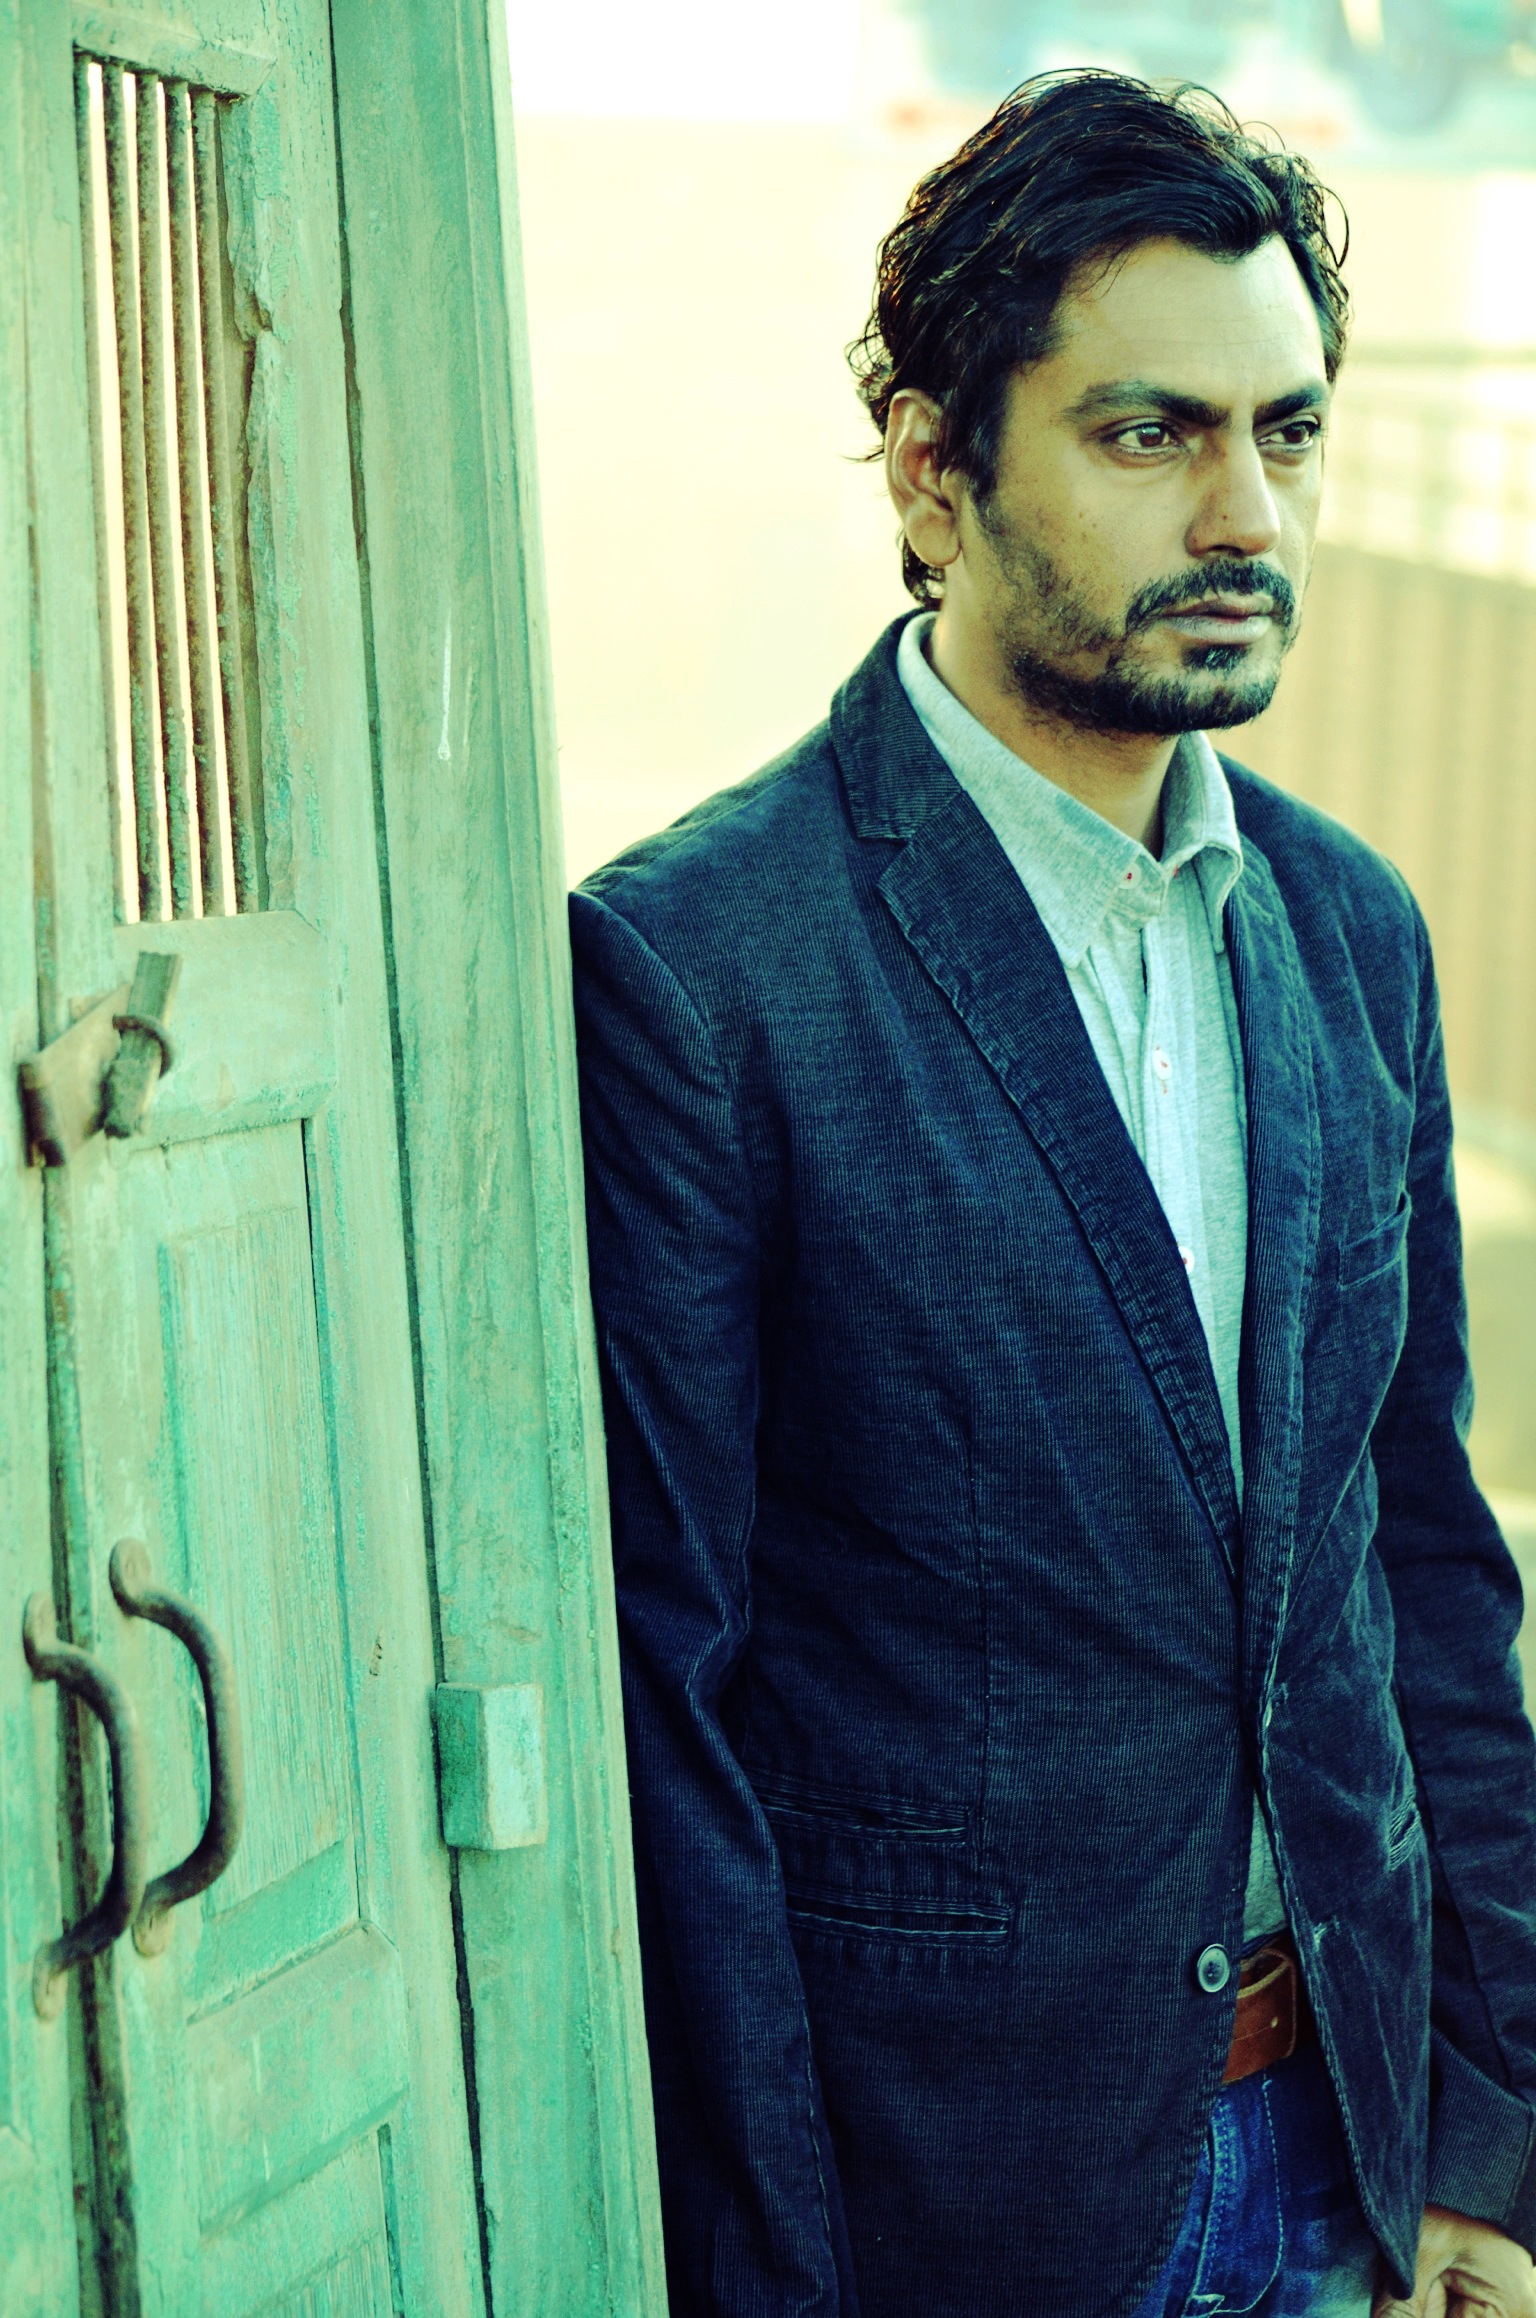 nawazuddin siddiqui movies listnawazuddin siddiqui movies, nawazuddin siddiqui height, nawazuddin siddiqui upcoming movies, nawazuddin siddiqui movies online, nawazuddin siddiqui amitabh bachchan, nawazuddin siddiqui and amy jackson, nawazuddin siddiqui twitter, nawazuddin siddiqui net worth, nawazuddin siddiqui movies 2016, nawazuddin siddiqui pronunciation, nawazuddin siddiqui new movie, nawazuddin siddiqui movies list, nawazuddin siddiqui sarfarosh, nawazuddin siddiqui wikipedia, nawazuddin siddiqui kick, nawazuddin siddiqui films, nawazuddin siddiqui in comedy nights with kapil, nawazuddin siddiqui fees, nawazuddin siddiqui in munna bhai mbbs, nawazuddin siddiqui dialogue in kick